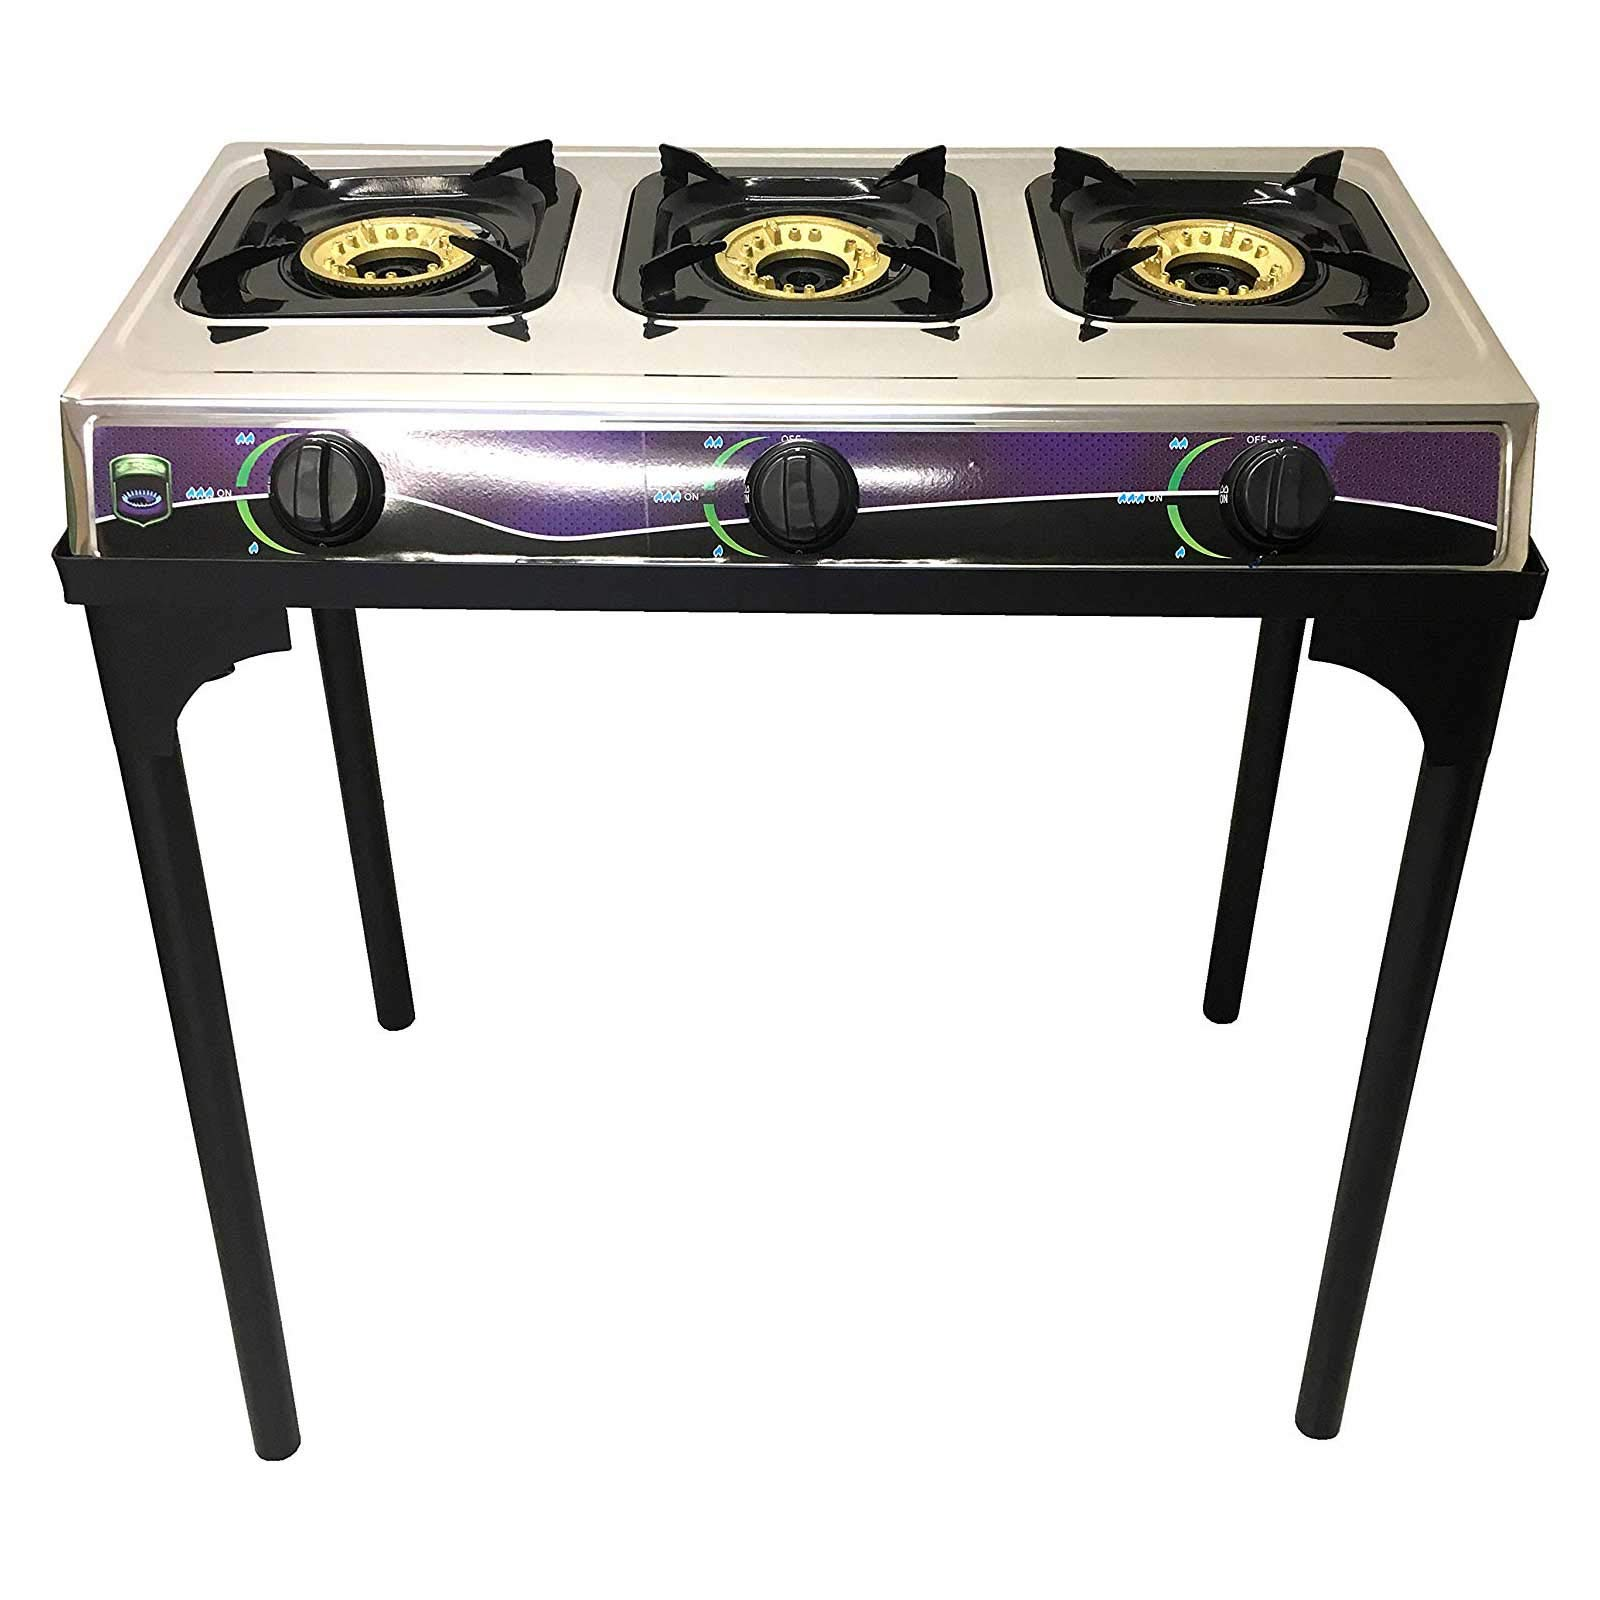 #1 Heavy Duty Three Burner Propane Gas Stove Outdoor Cooking Butane Gas Stove Full Stainless Steel Body Electronic Ignition Available without or with Black Metal Stand (THREE BURNER STOVE WITH STAND) by Unique Imports